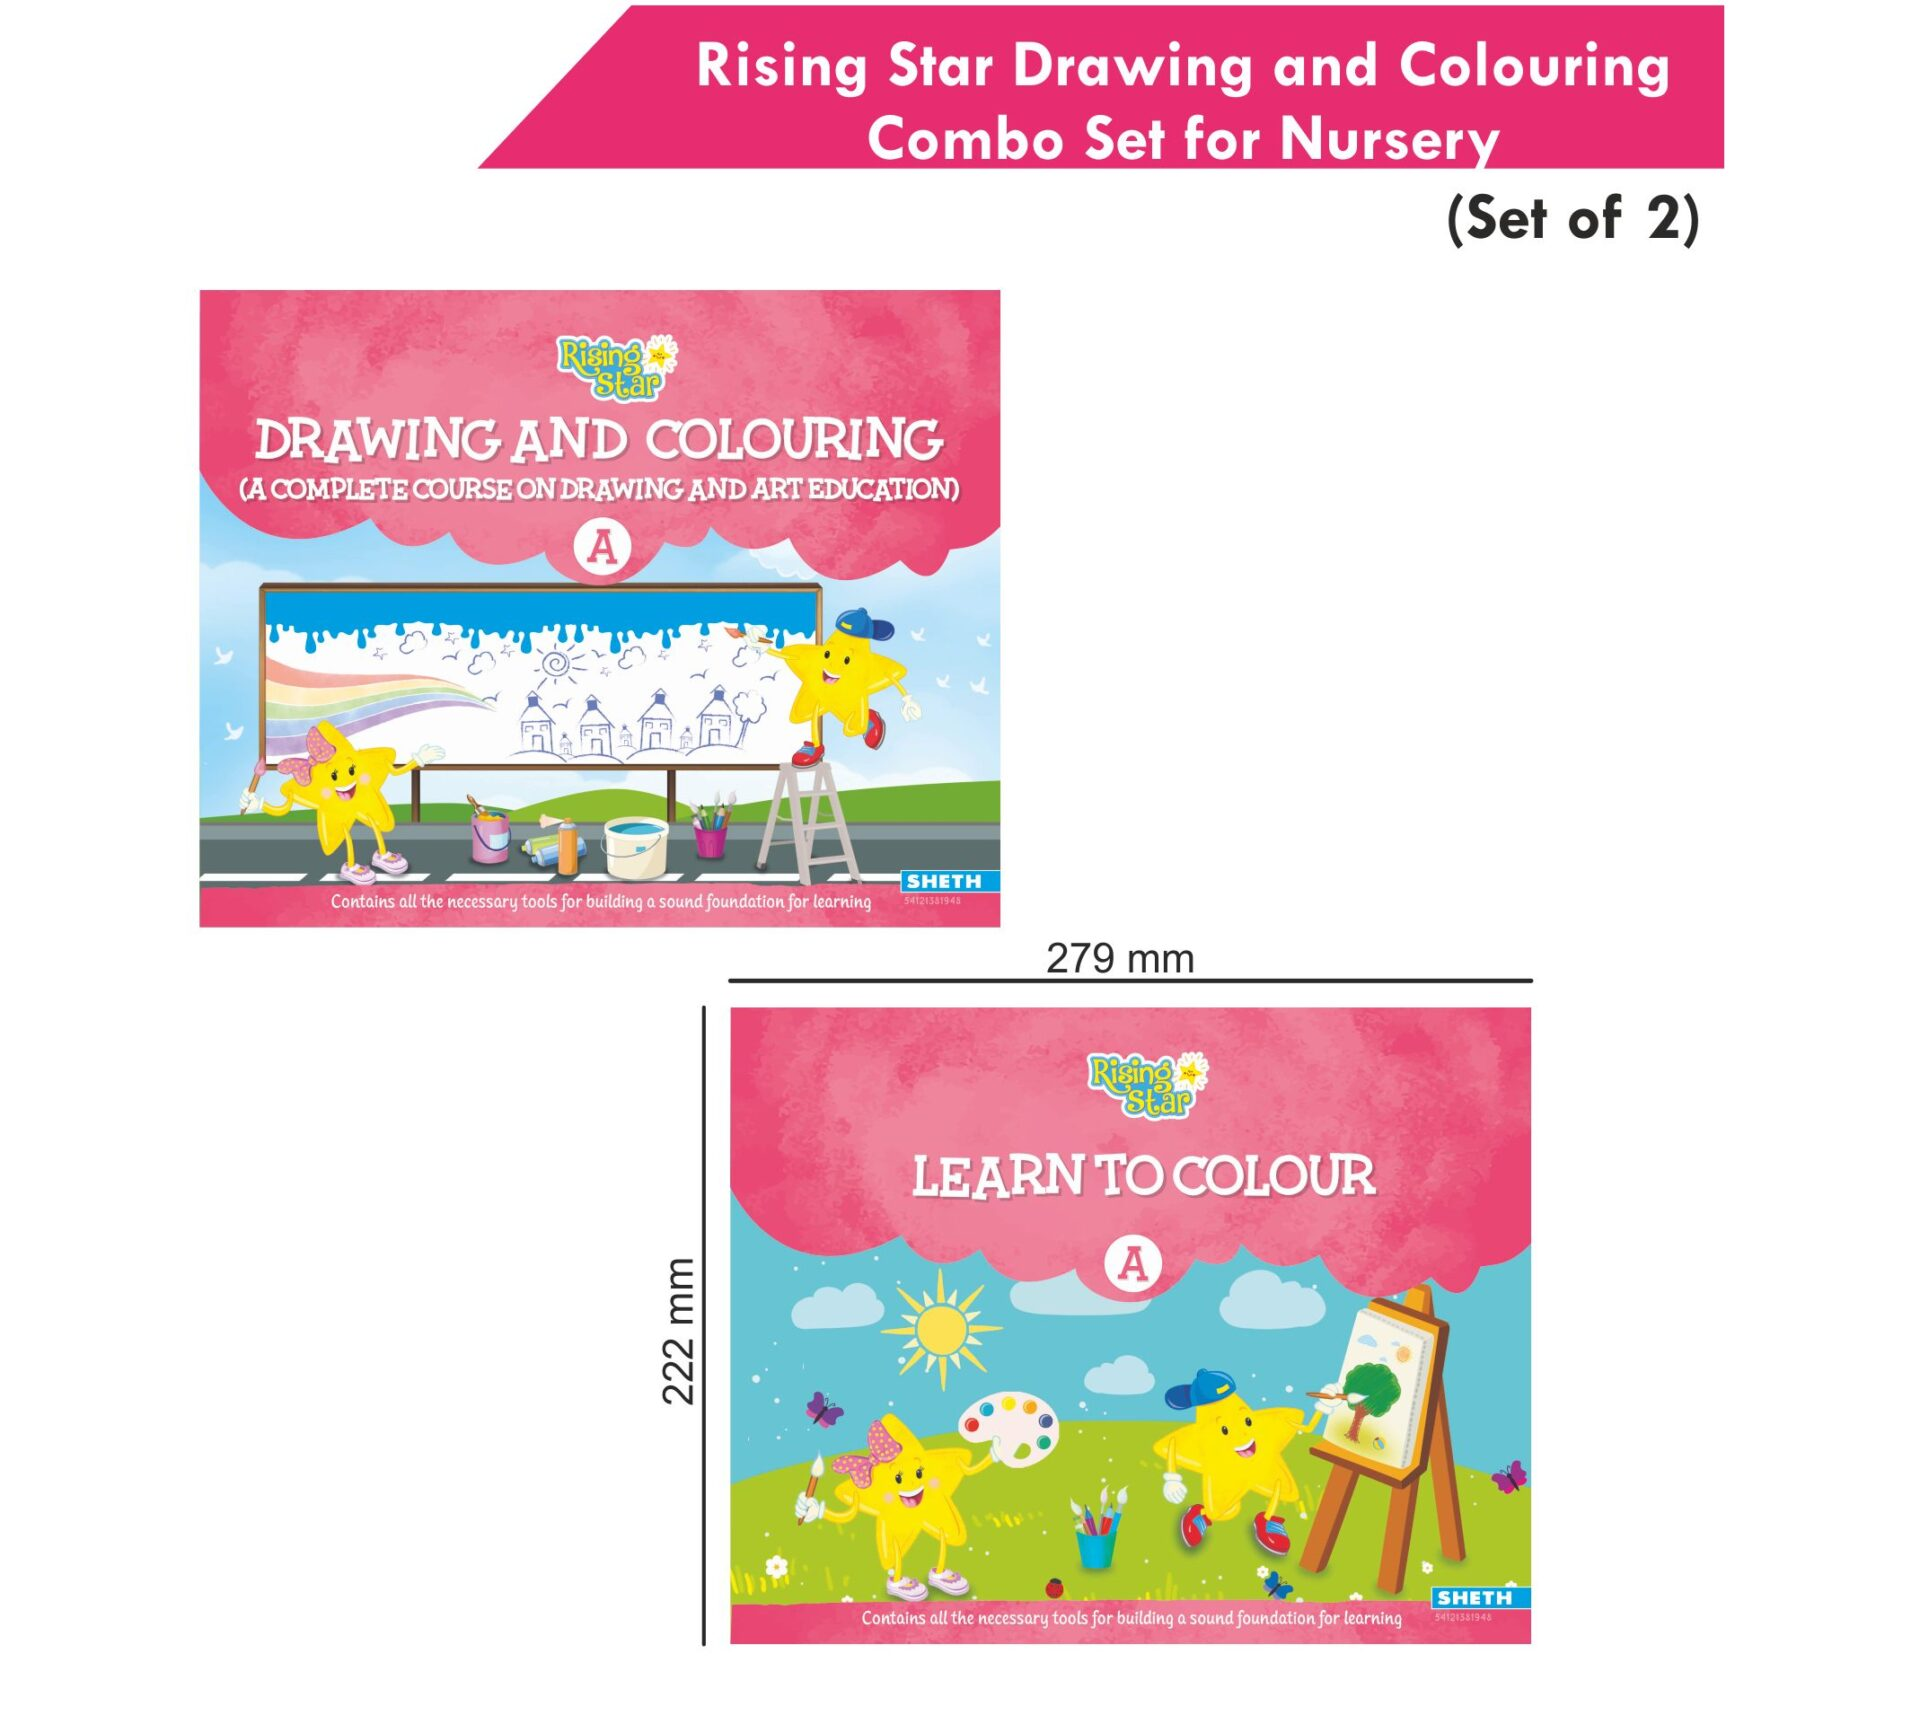 Rising Star Drawing and Colouring Combo Set for Nursery Set of 2 2